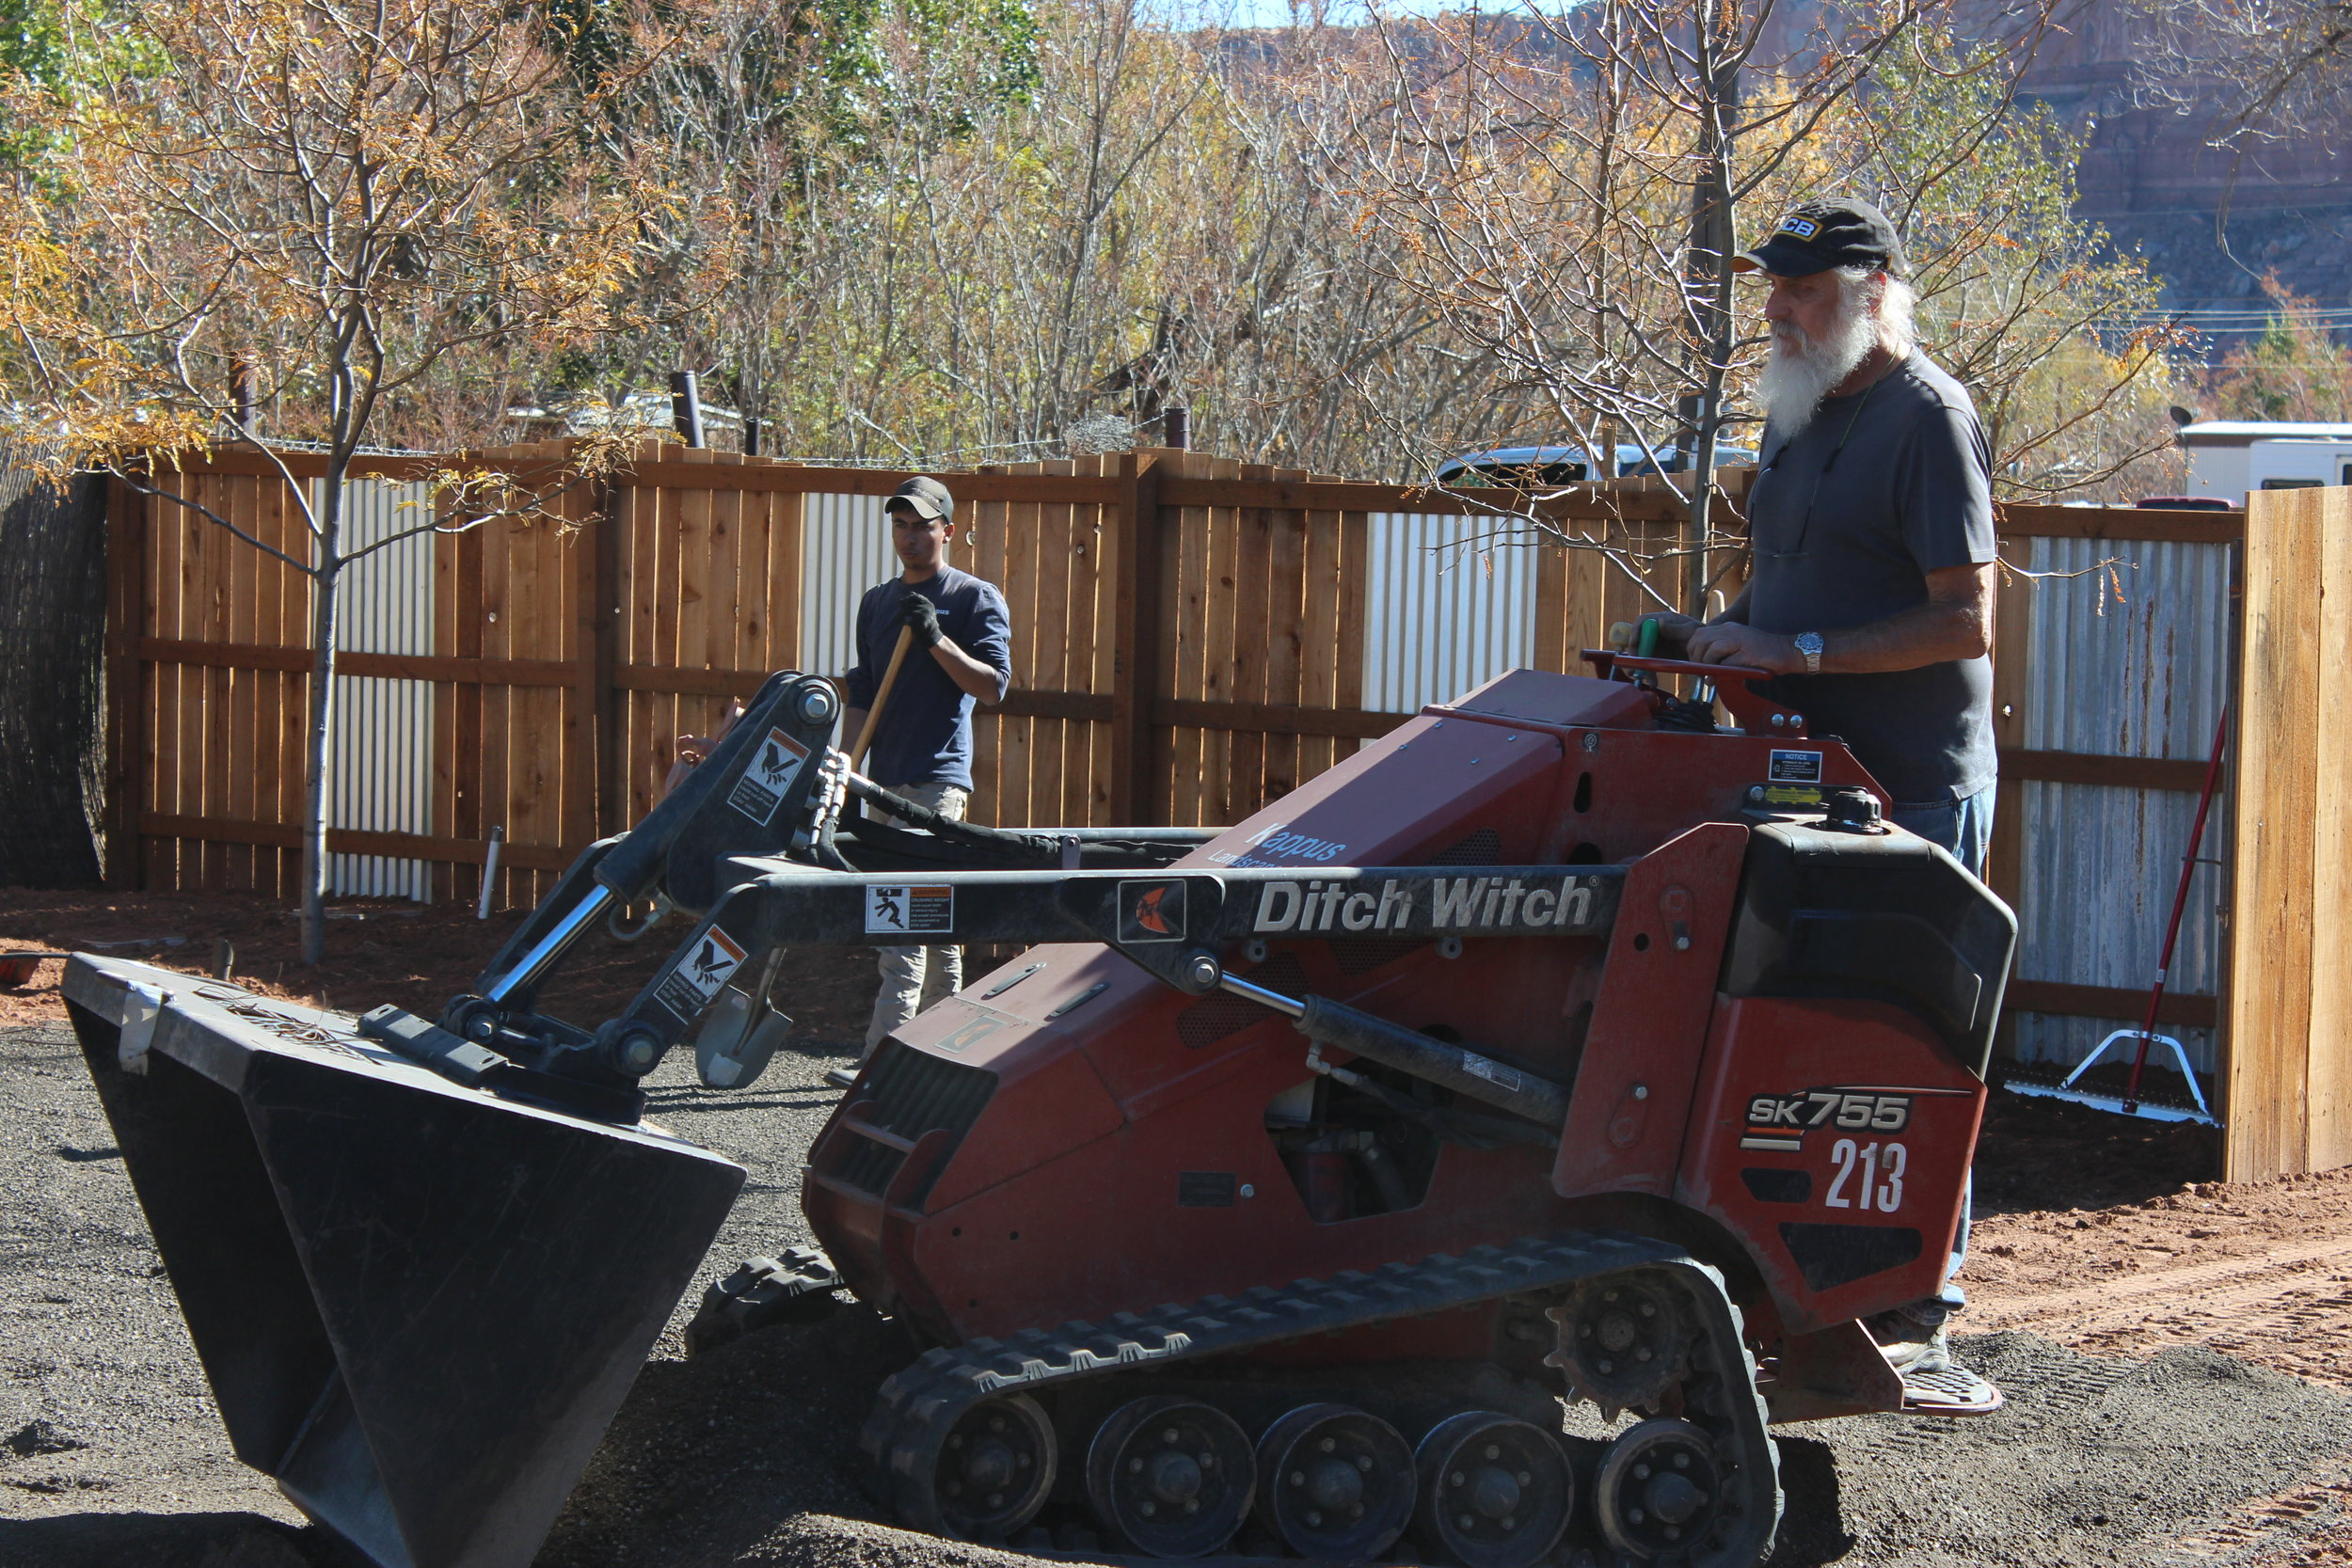 Kappus Landscape Sprinkler's Owner, Kurt Kappus, operates machinery while helping complete a landscaping project for the Bears Ears Visitor Center in Bluff, Utah. Kappus donated the labor and landscaping materials for this project.